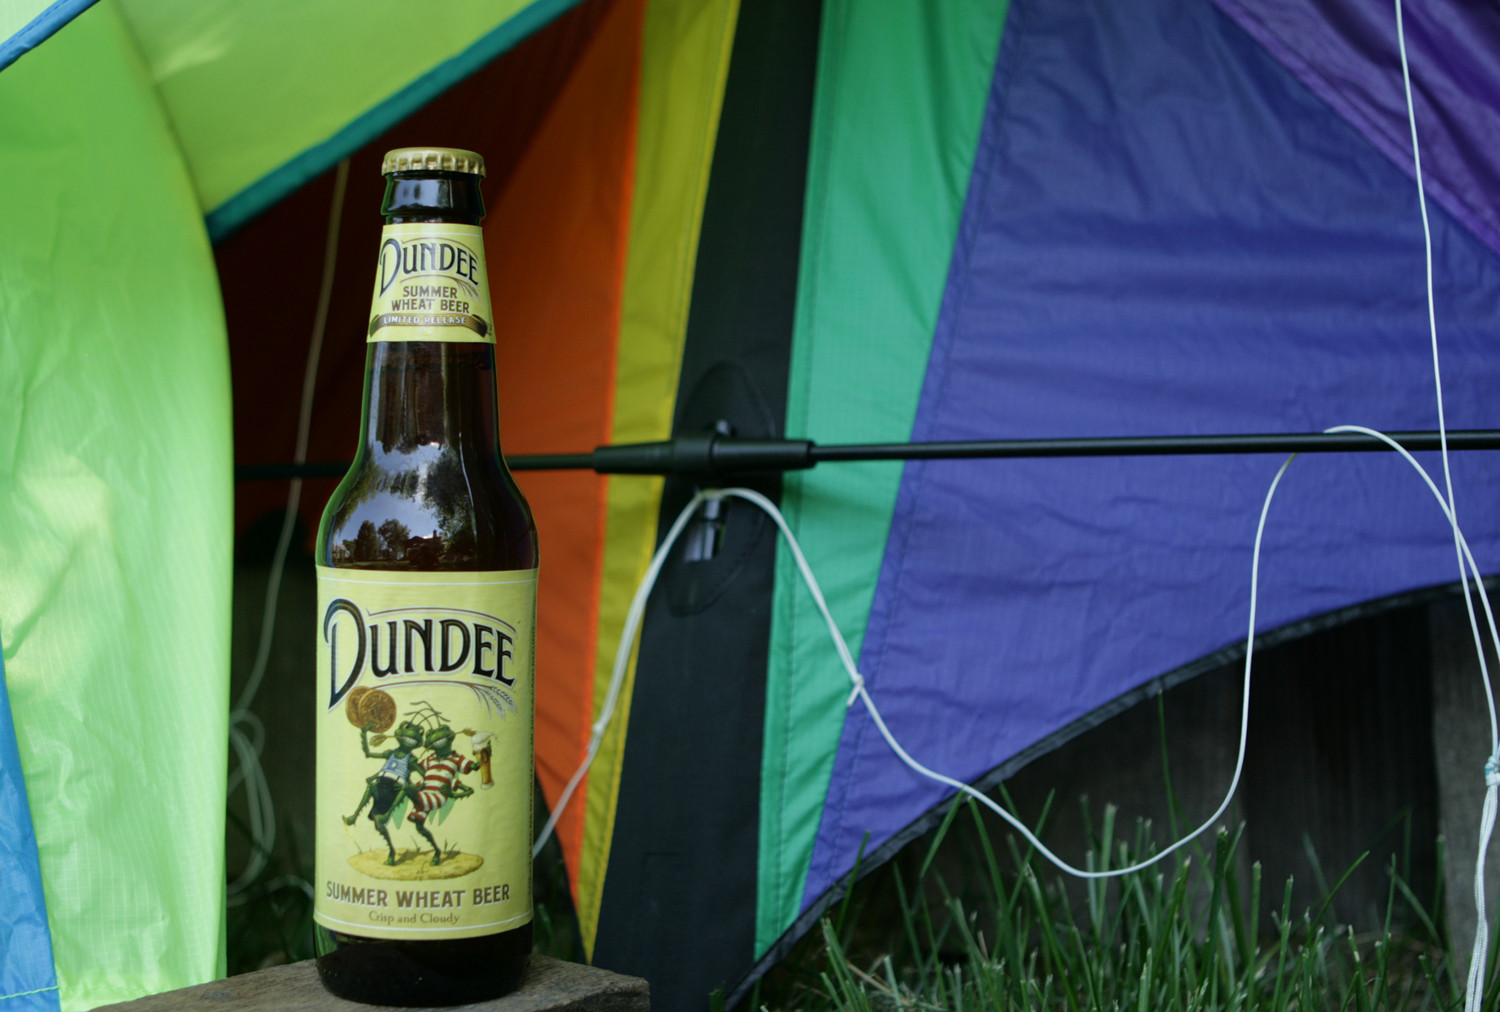 Dundee's summer seasonal release beer is a great refreshing drink.